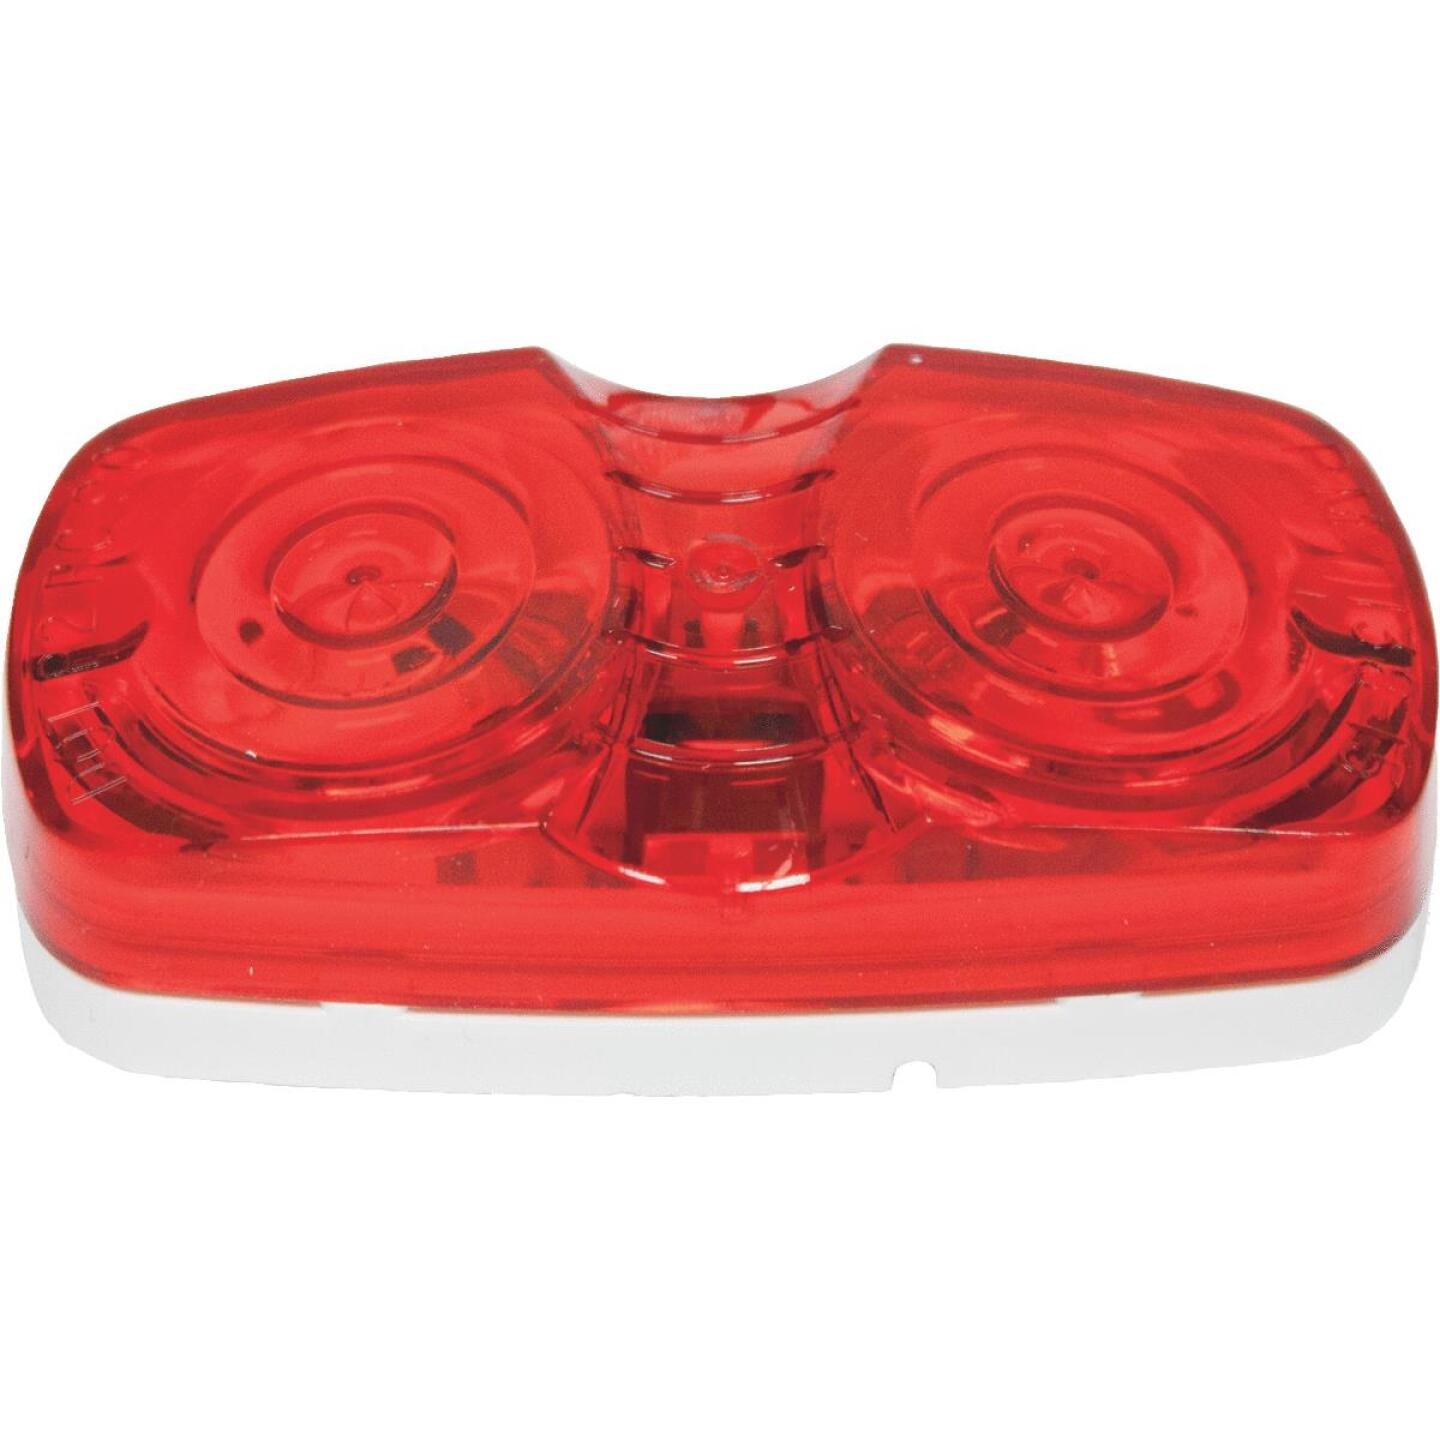 Peterson Low-Profile 12 V. Red Clearance Light Image 1